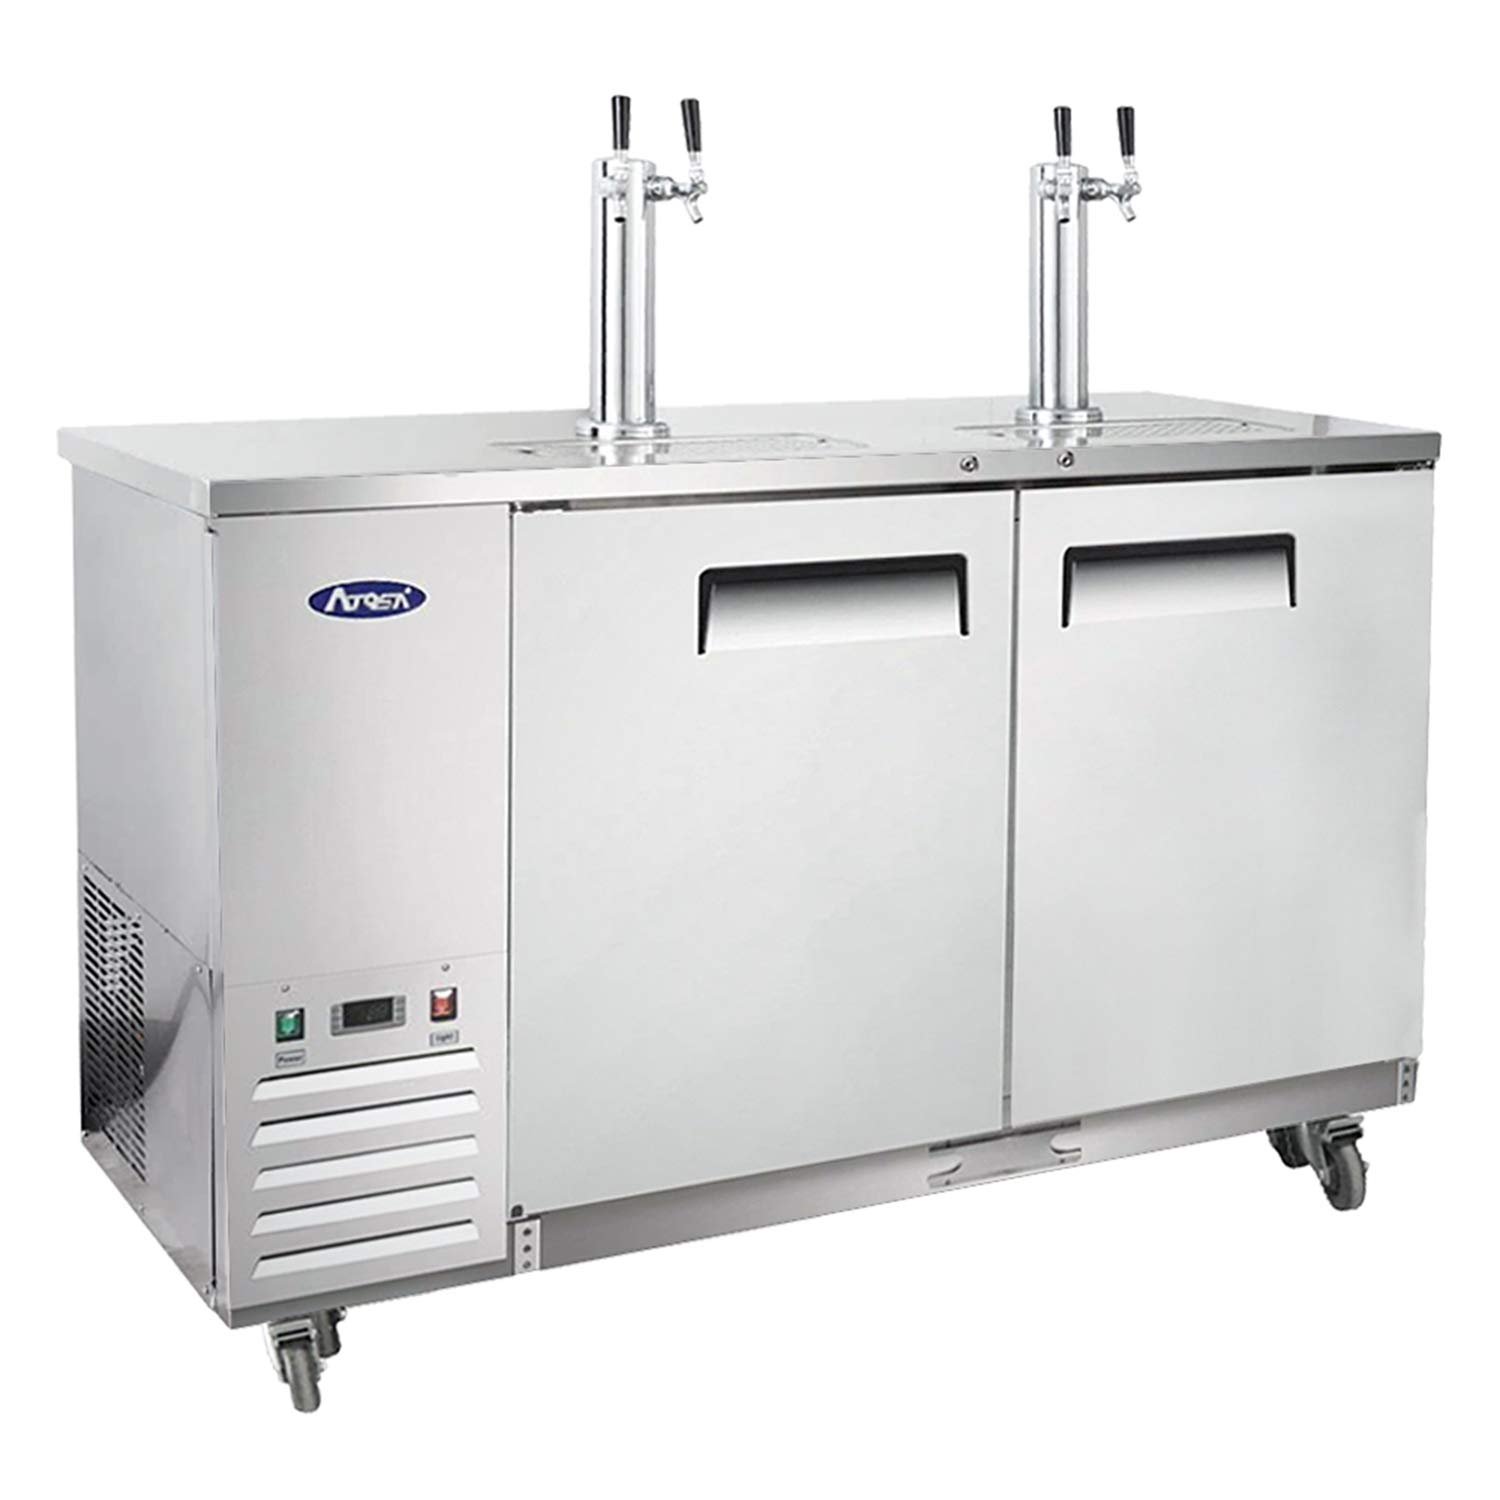 Kegerator Beer Dispenser Albuquerque Mall with 2 Keg New item Commercial Atosa Towers Tap